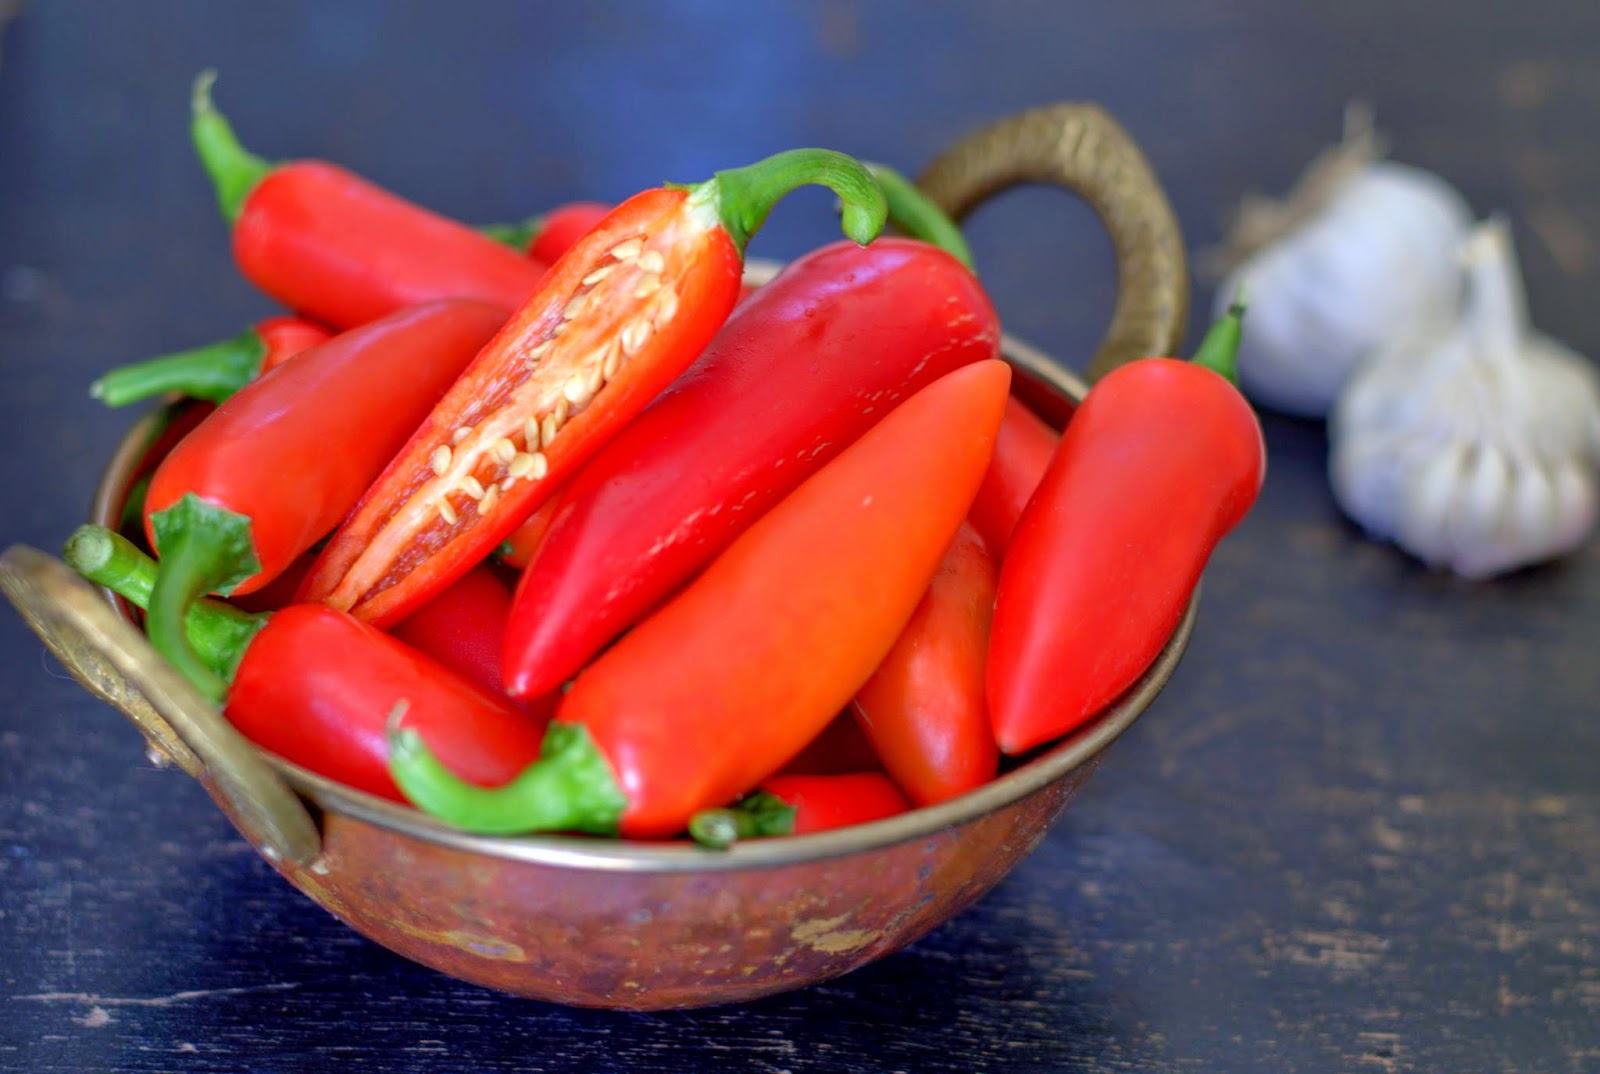 red chilies for my harissa